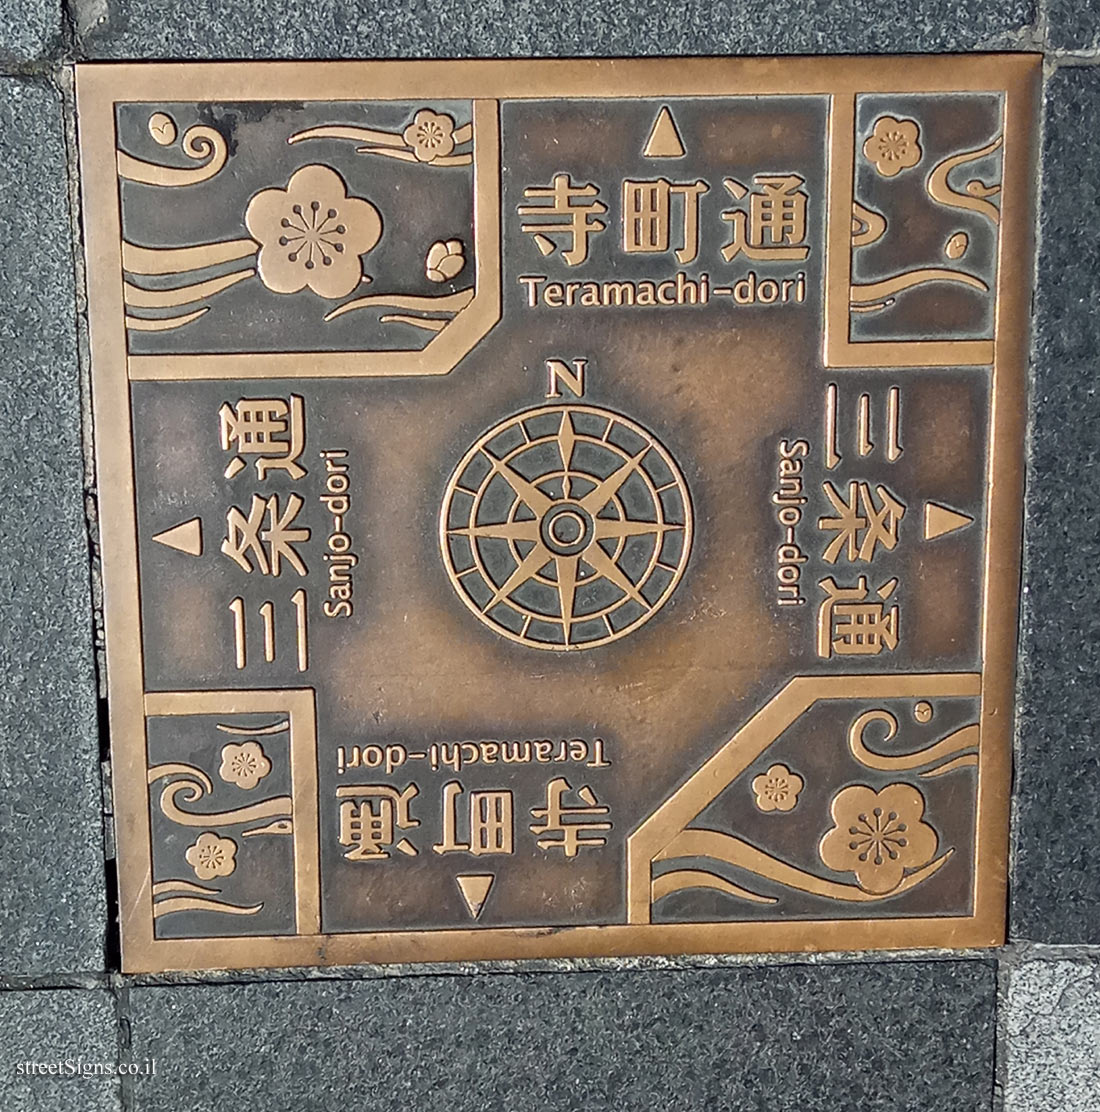 Kyoto - a direction sign pointing to city streets